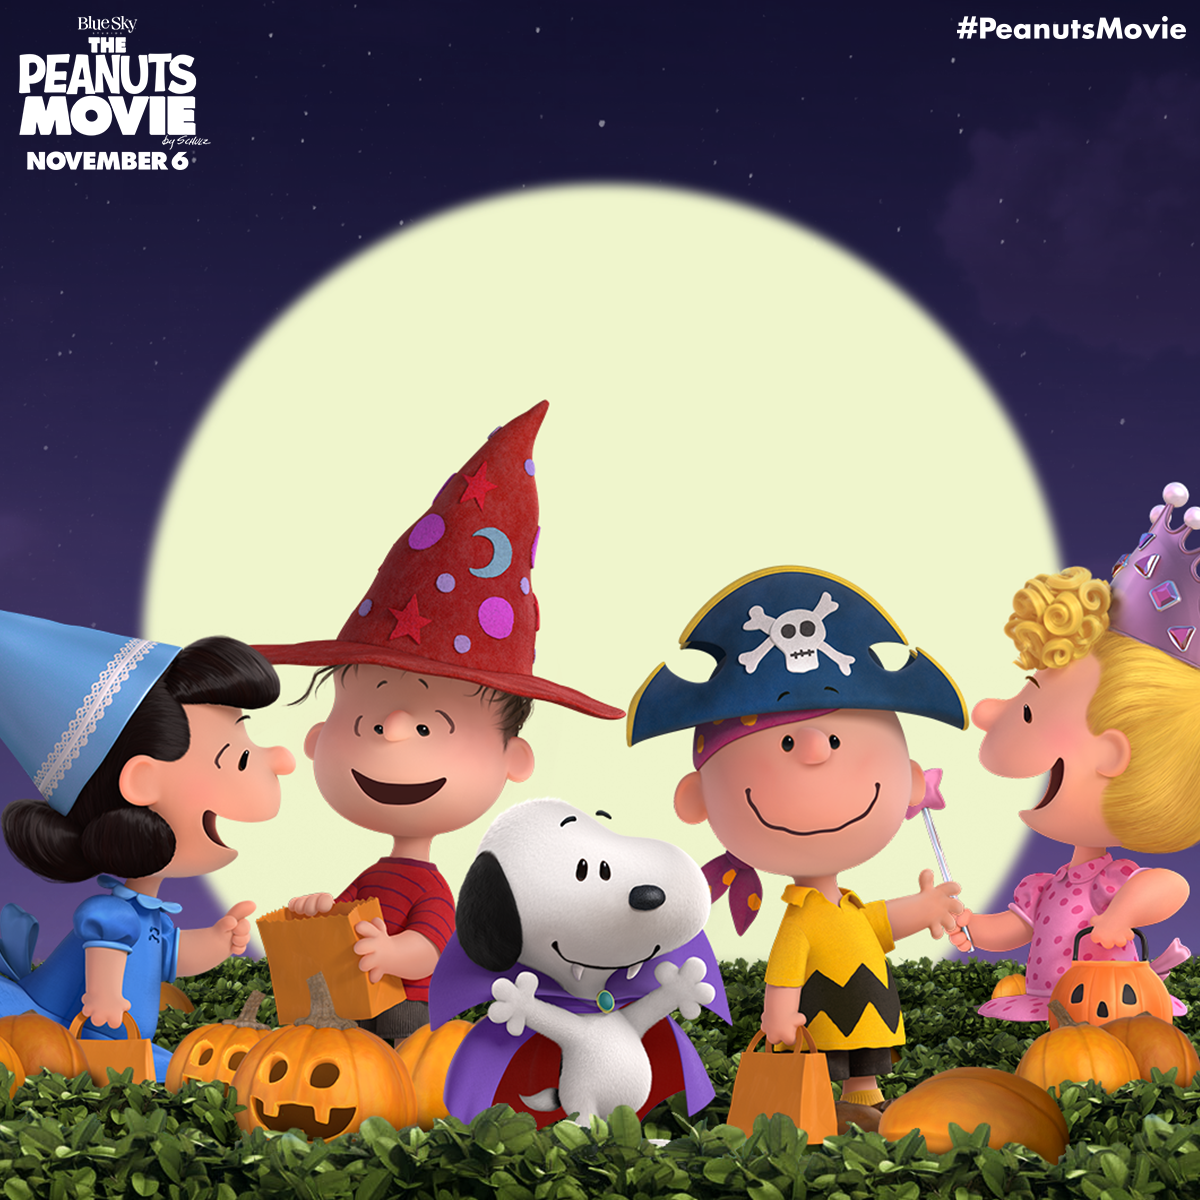 Free Snoopy Fall Wallpaper The Peanuts Movie On Twitter Quot It S The Peanutsmovie